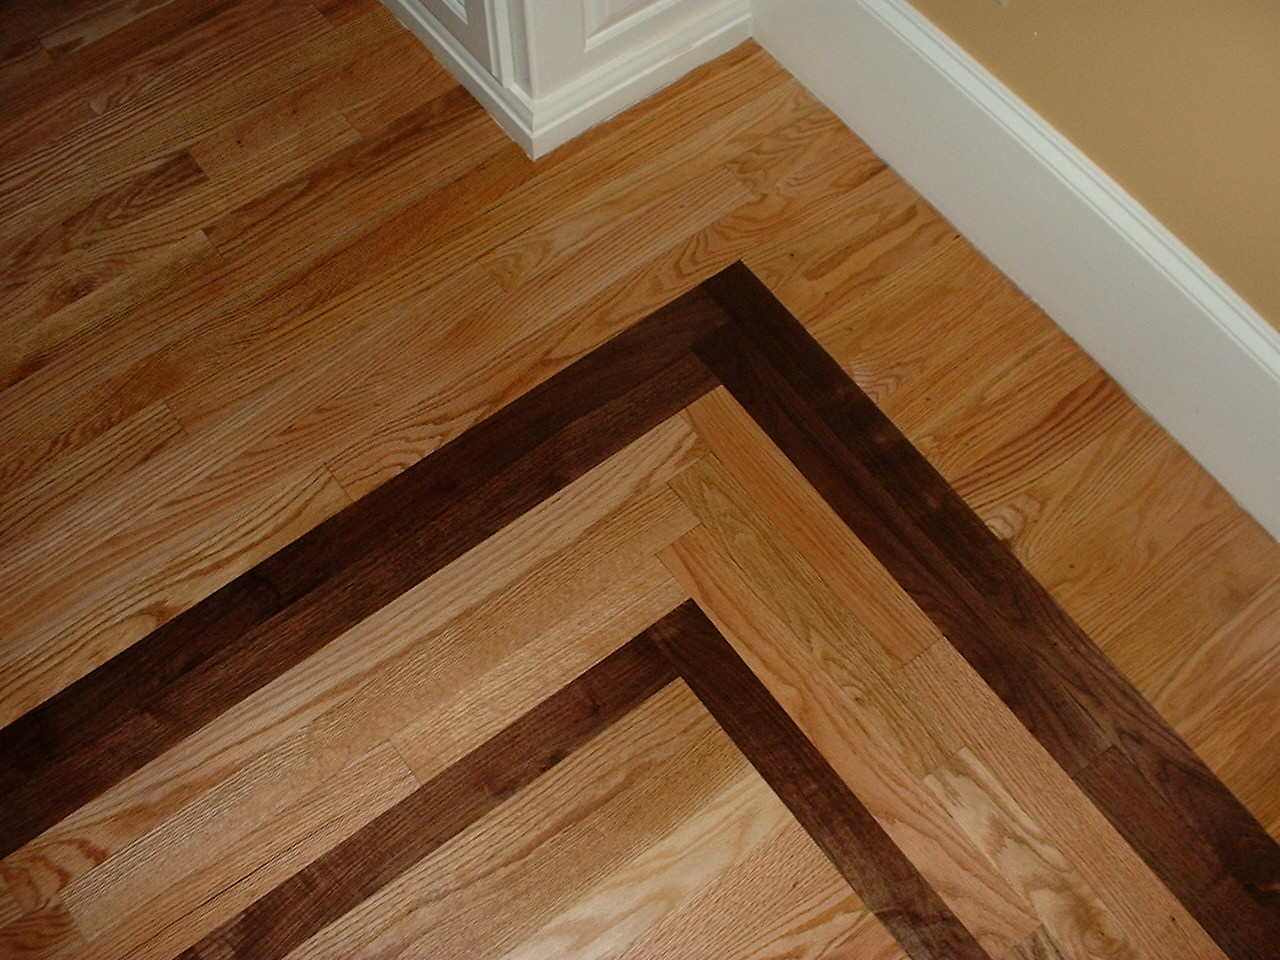 Borders ozark hardwood flooring for Floor tiles border design